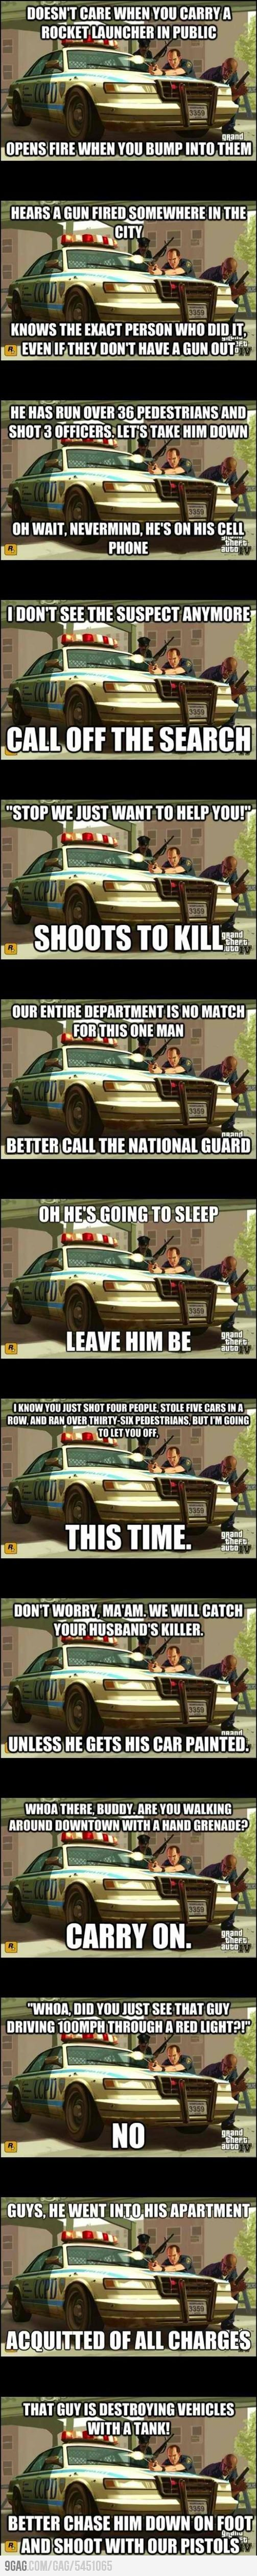 This is why we love Grand Theft Auto So Much!